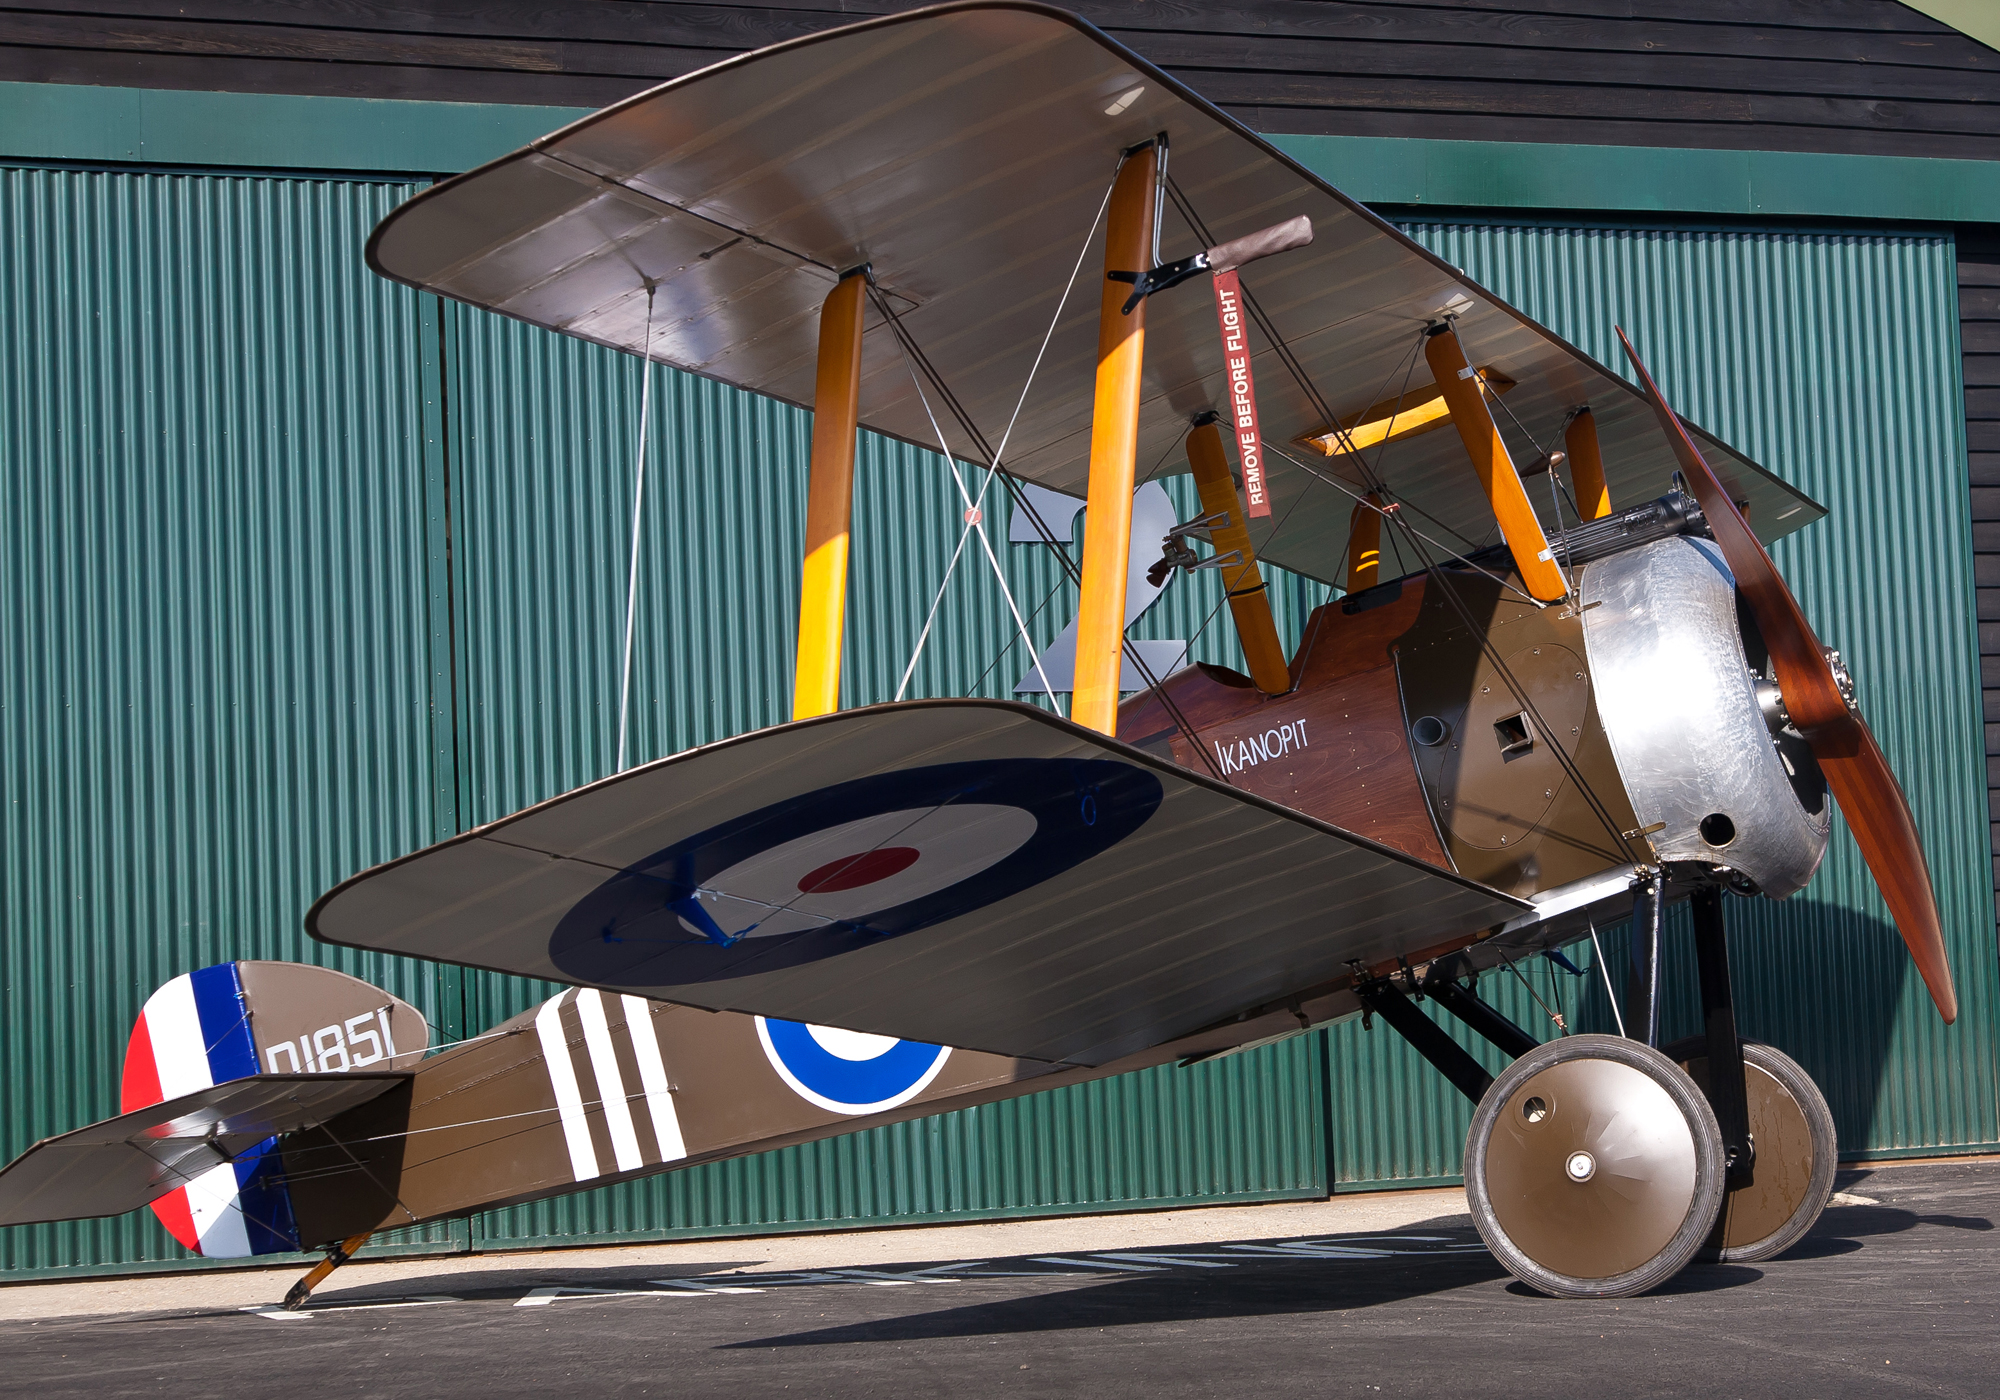 SOPWITH CAMEL F-1 WWI FIGHTER - REVELL 1/72 scale